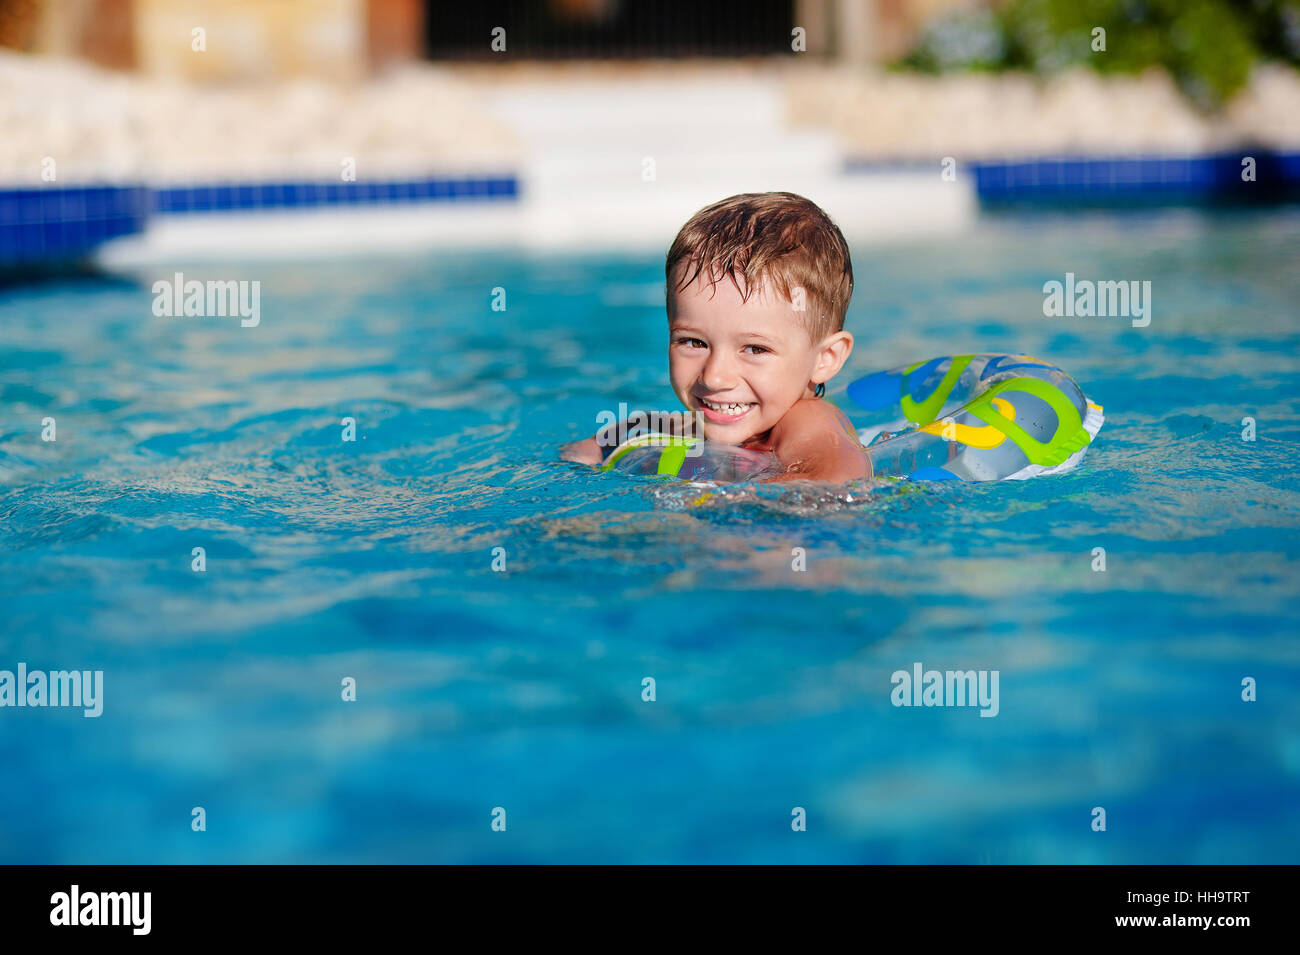 Happy little boy playing with colorful inflatable ring in outdoor swimming pool on hot summer day. Kids learn to - Stock Image